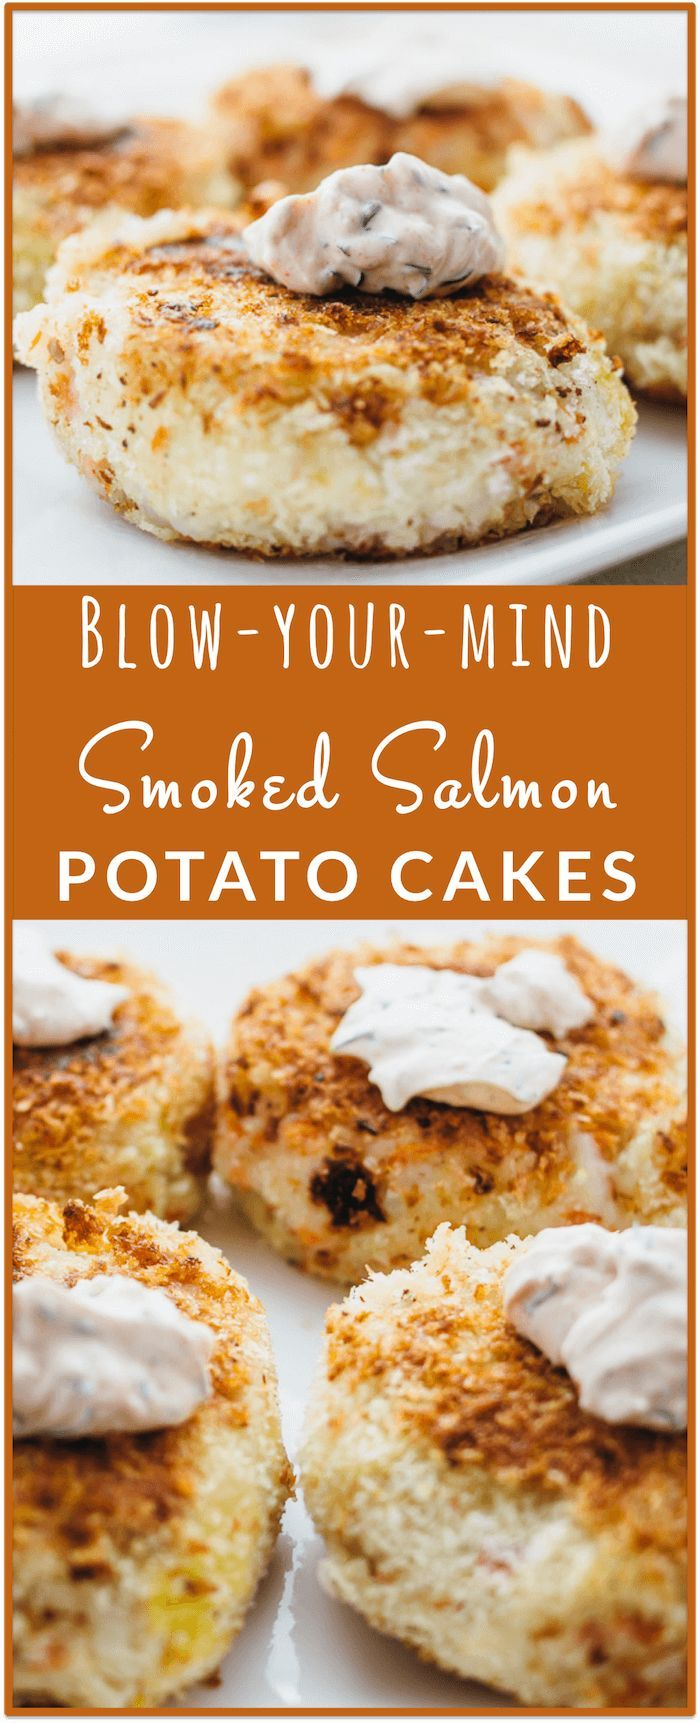 Smoked salmon potato cakes - Amazing smoked salmon potato cakes recipe: super crispy pan-seared exterior made of bread crumbs + smoked salmon and mashed potatoes interior. Best of all is the spicy dill-garlic dip for these bite-sized breakfast patties/pancakes! - http://savorytooth.com